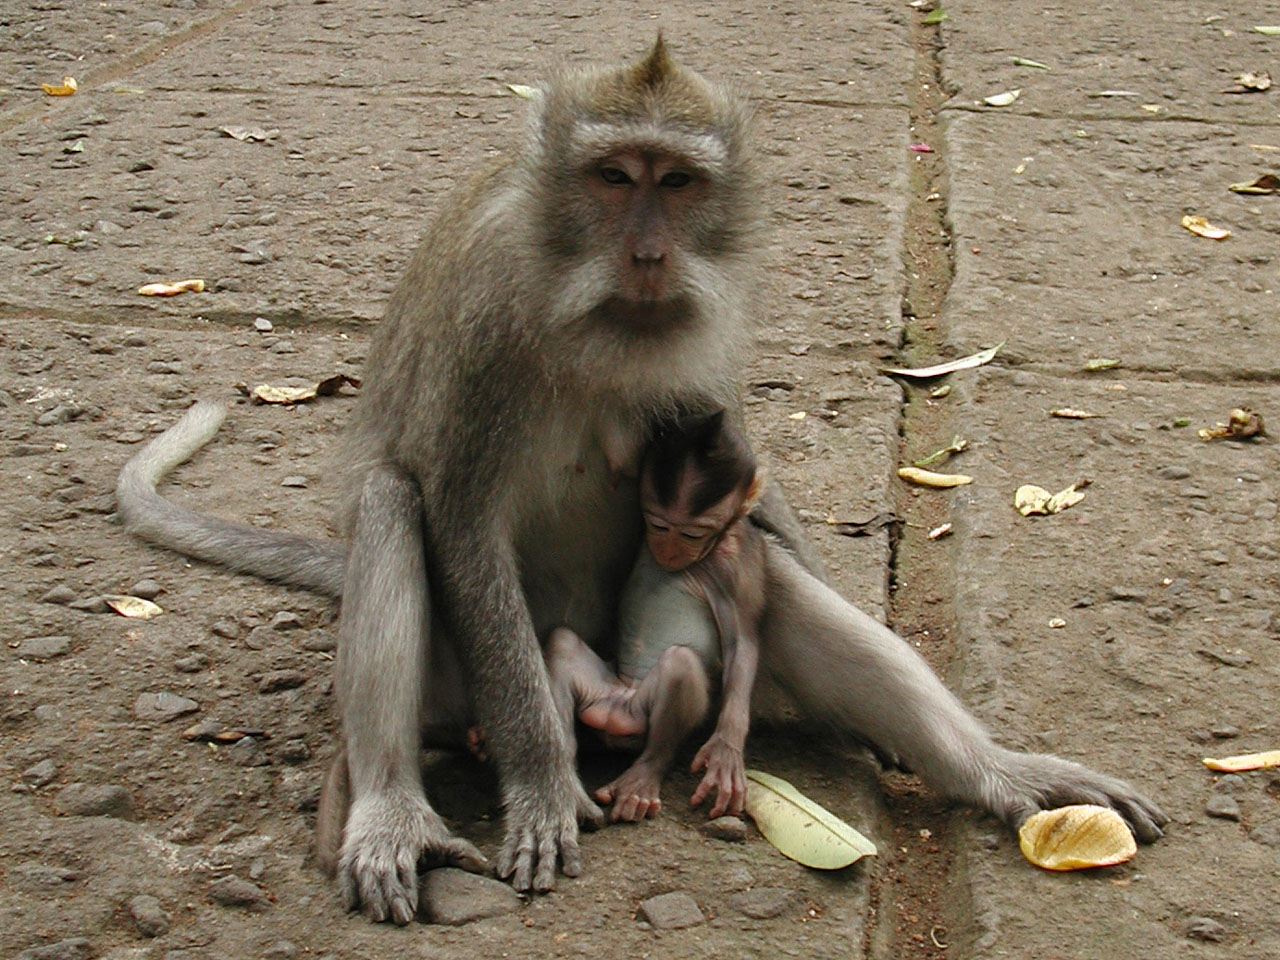 http://upload.wikimedia.org/wikipedia/commons/e/e0/MonkeyForestMotherAndChild.jpg